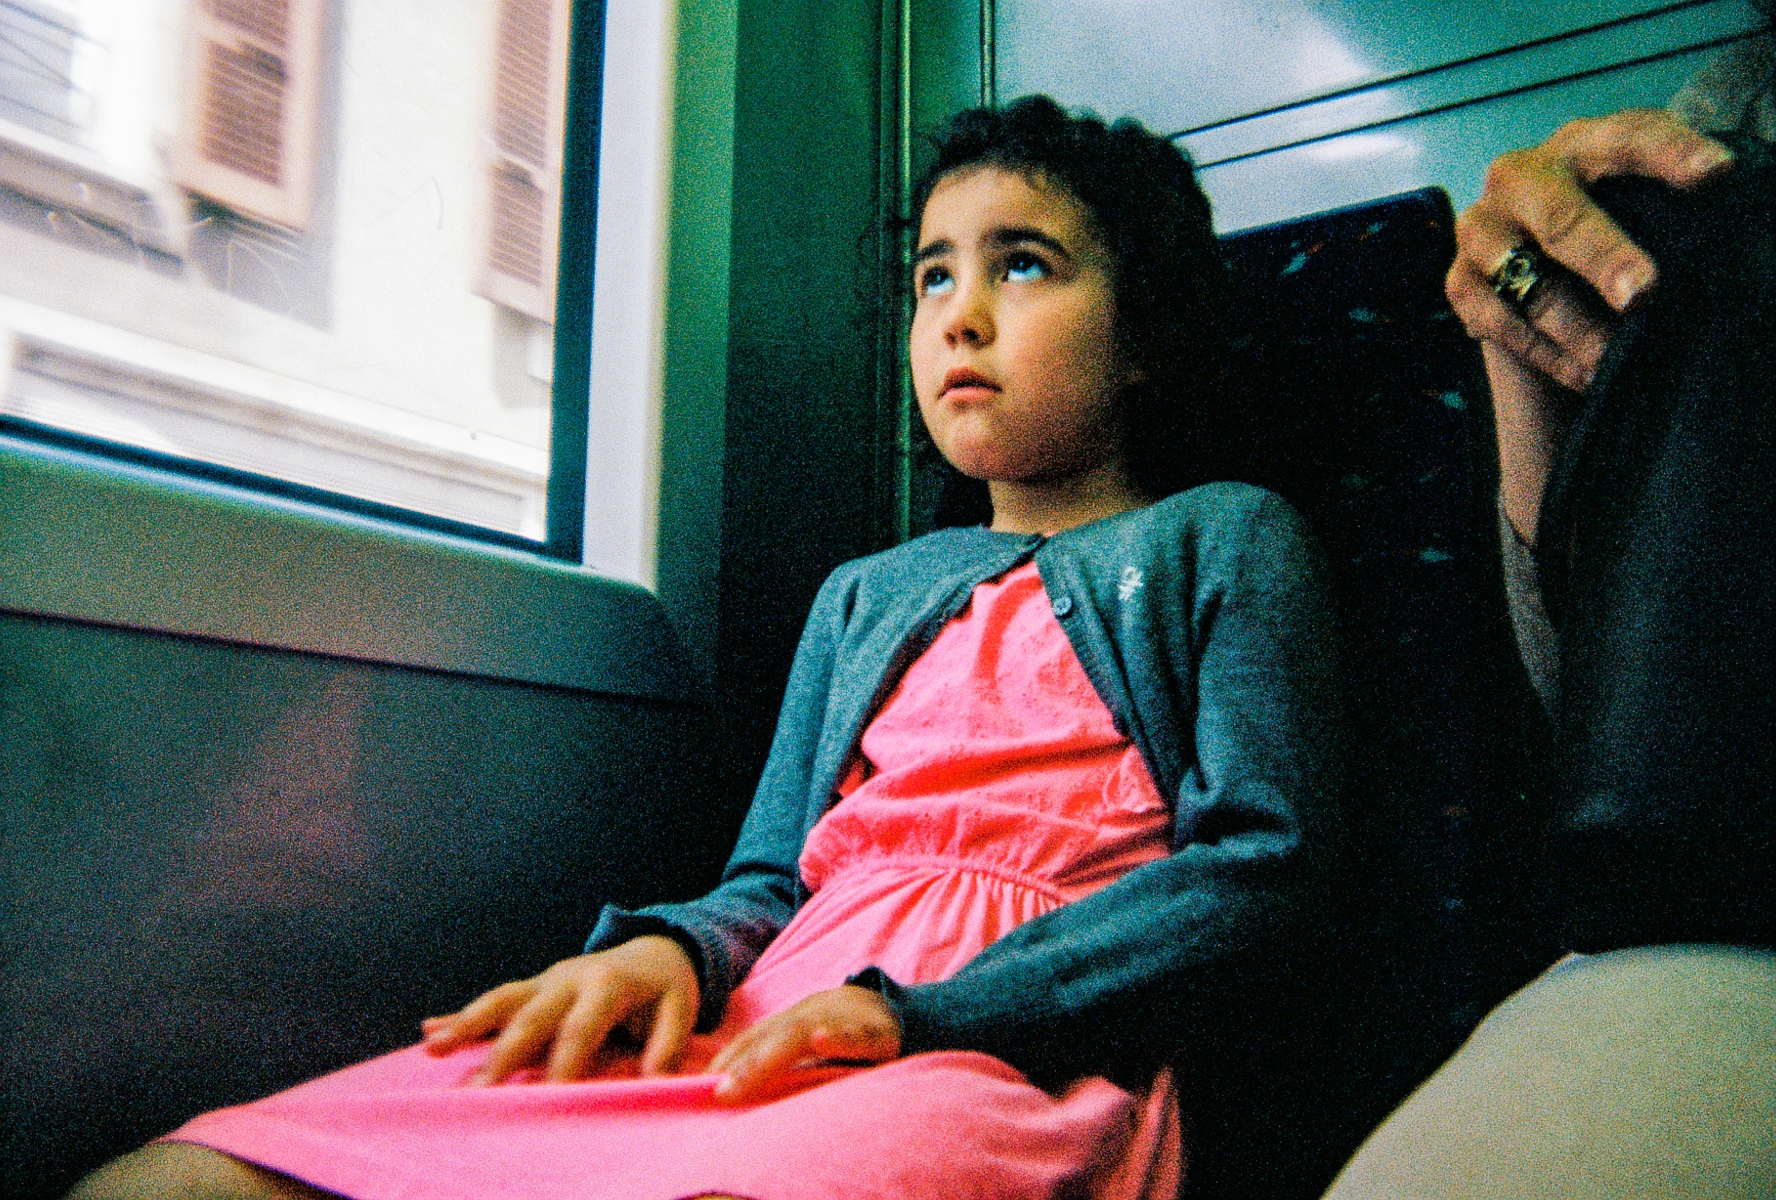 girl-on-the-train_009